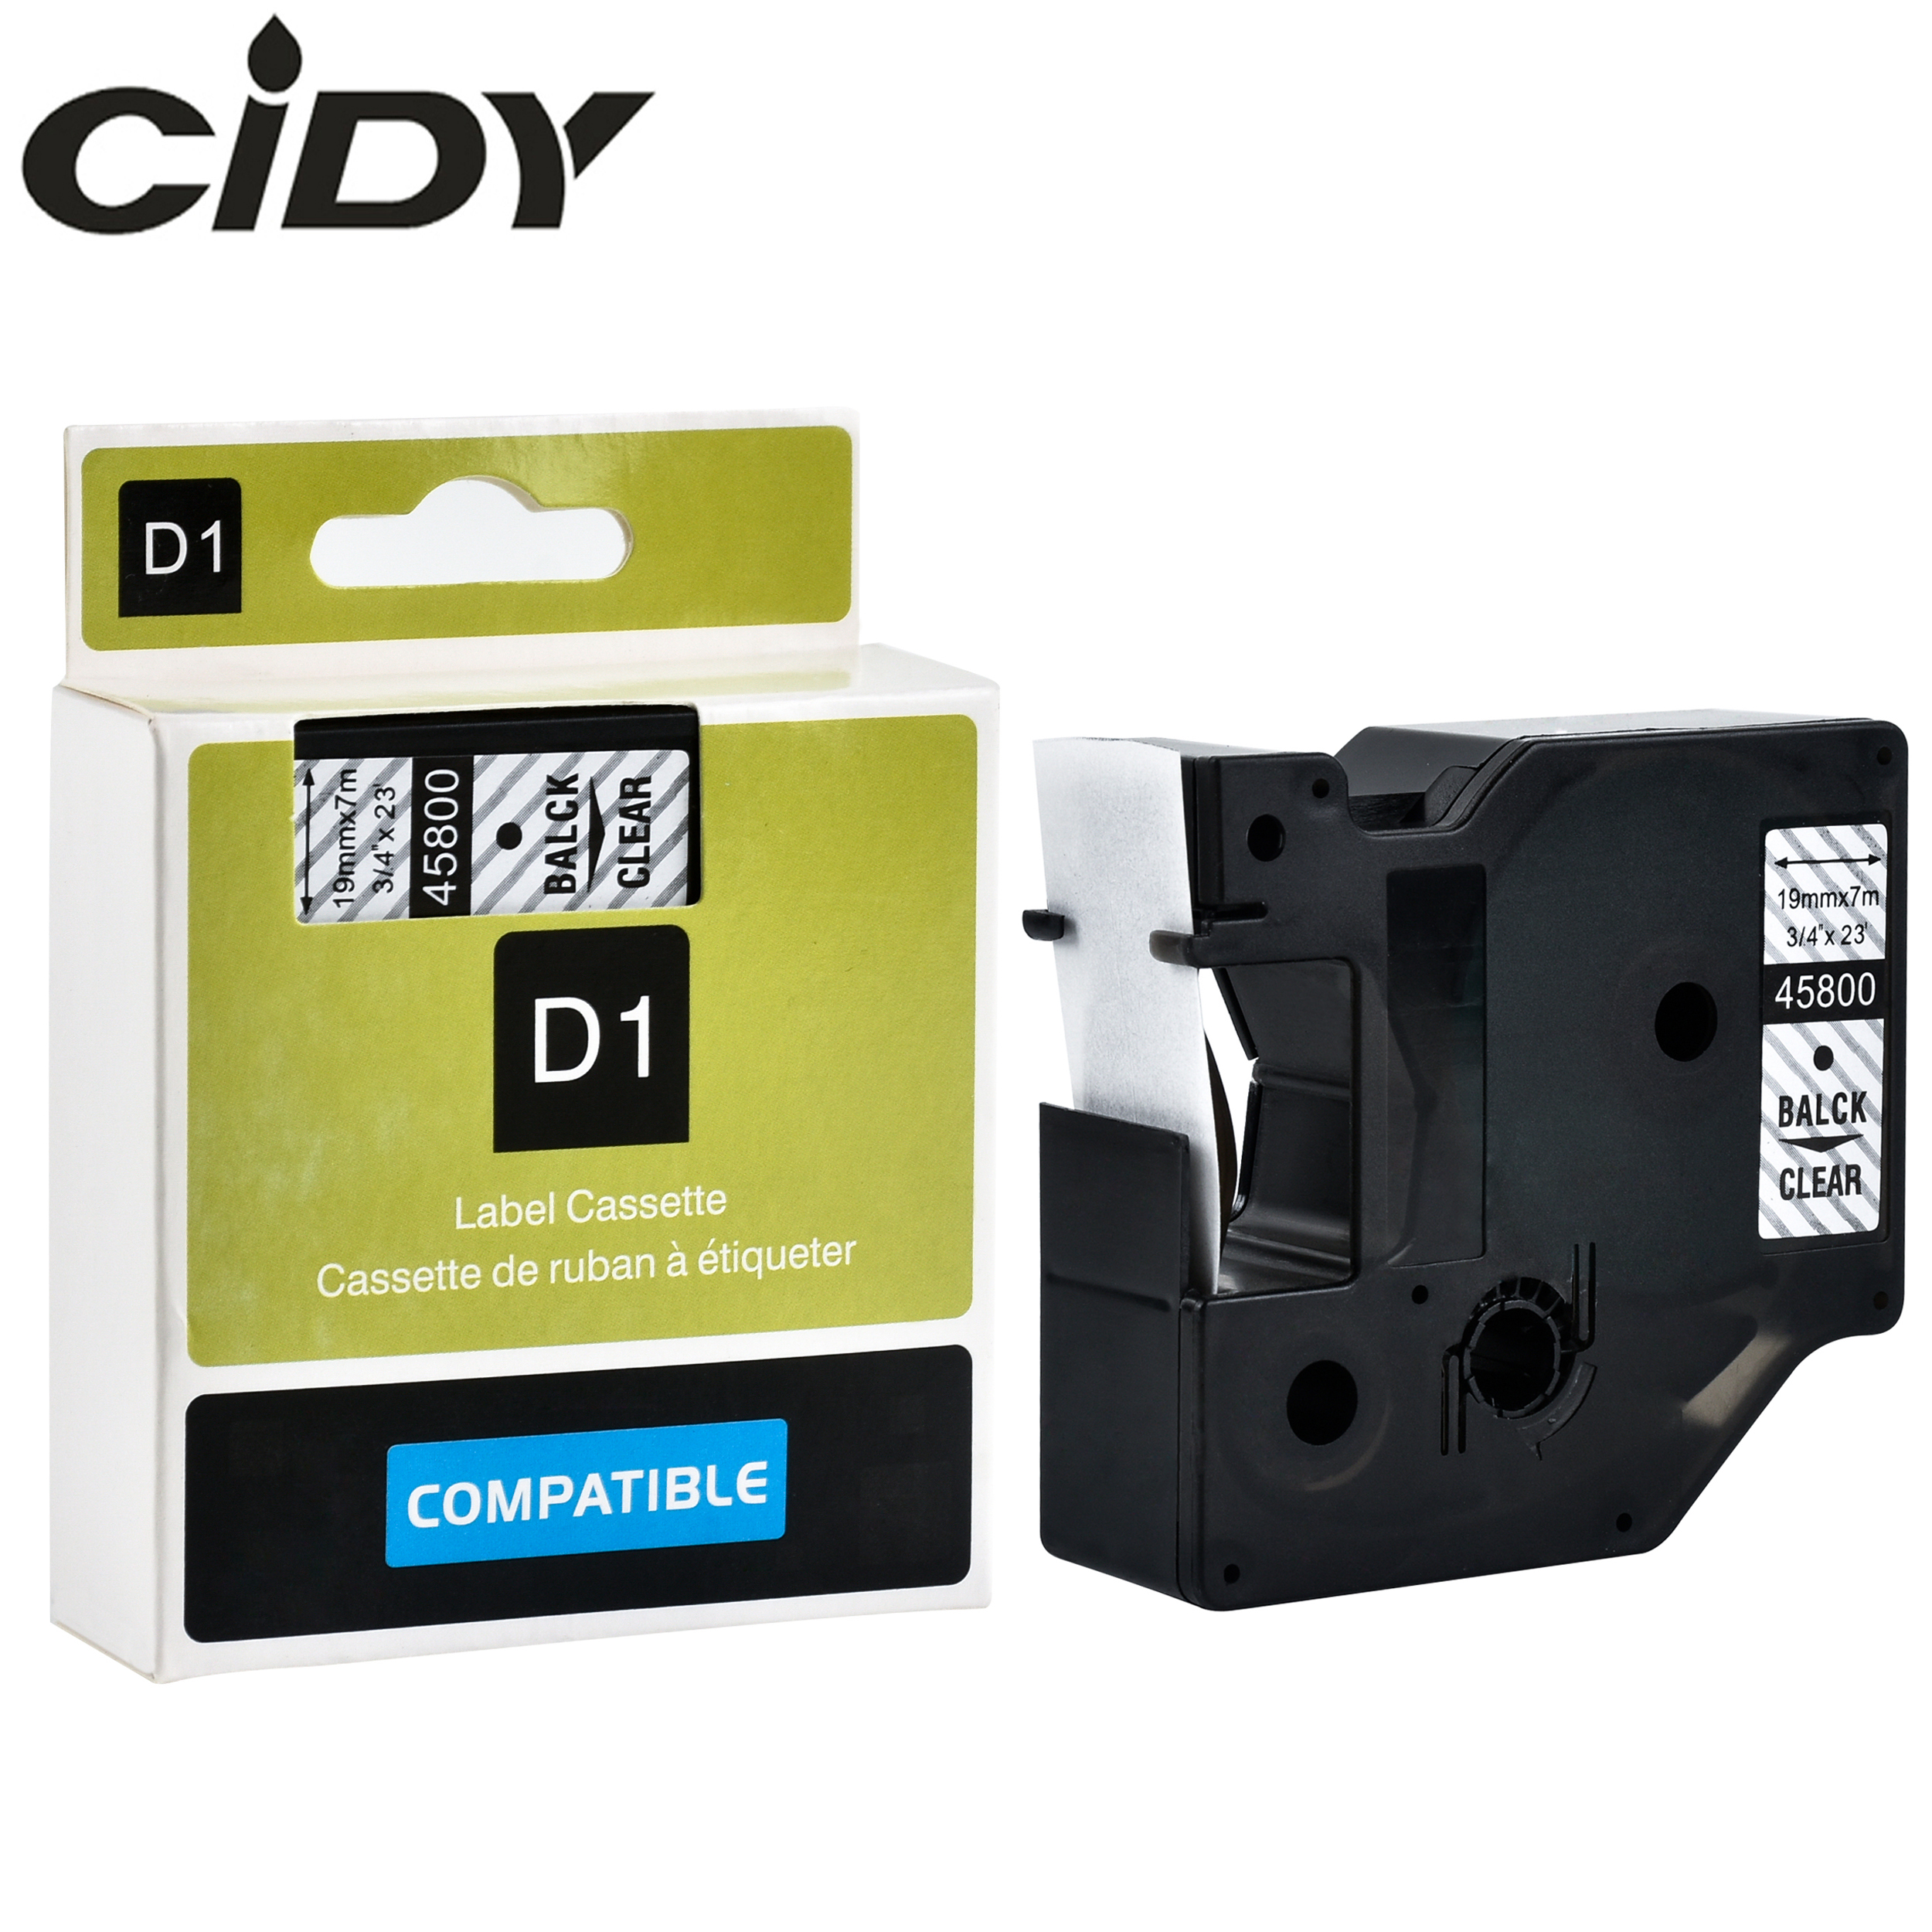 CIDY 10pcs Black on Clear 45800 19mm 7m for dymo label printers compatible label tapes FOR